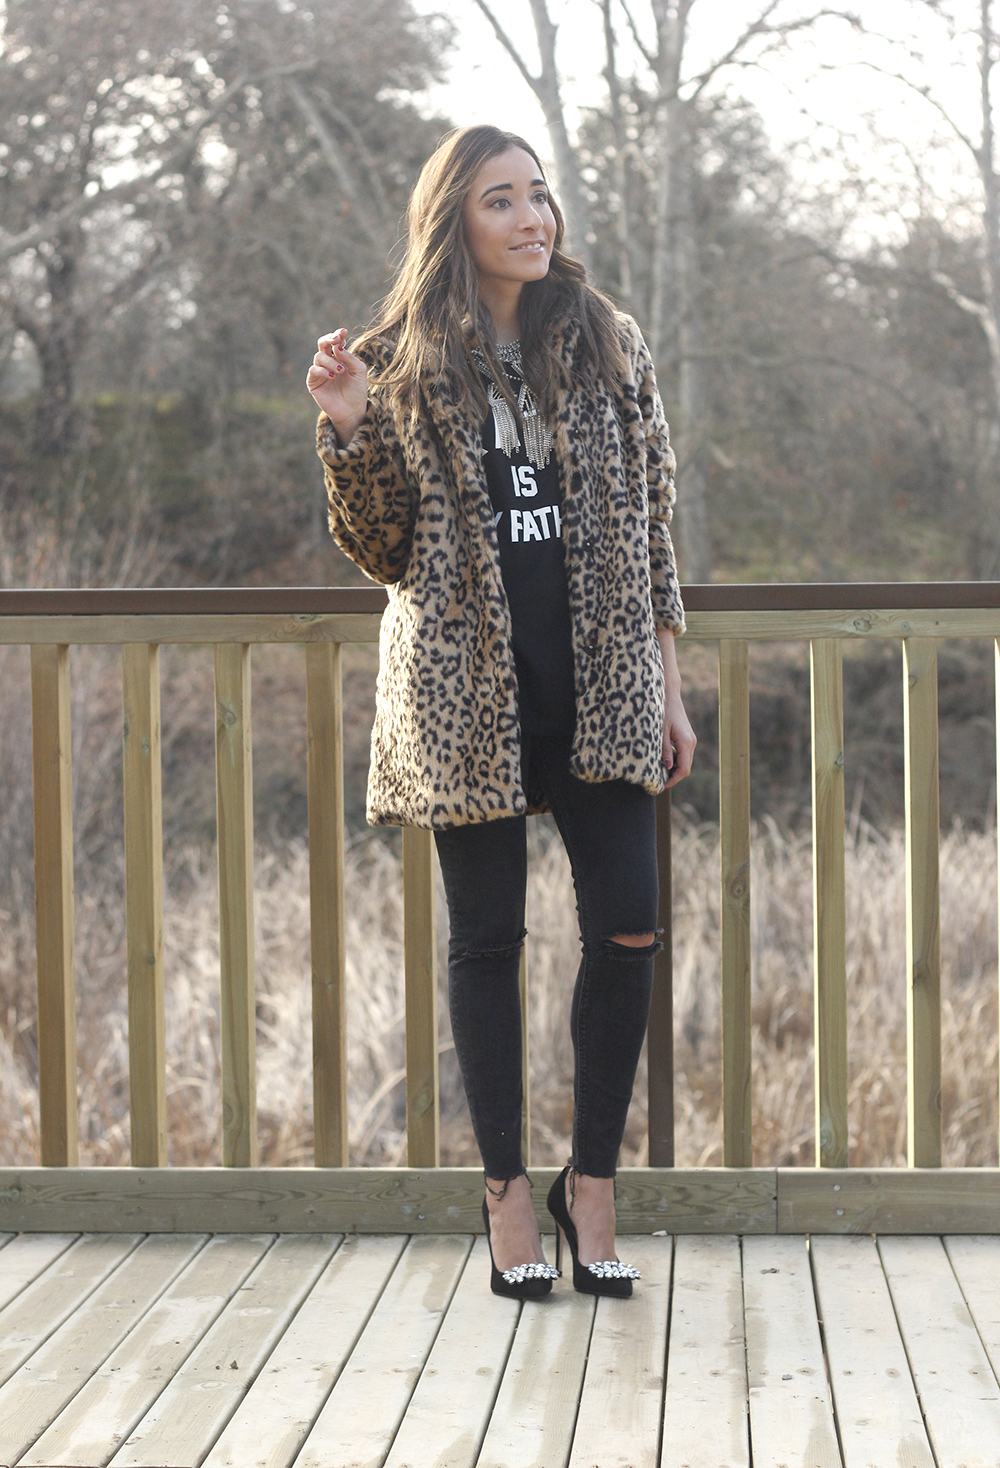 leopard coat black jeans jewel heels outfit style new year fashion06